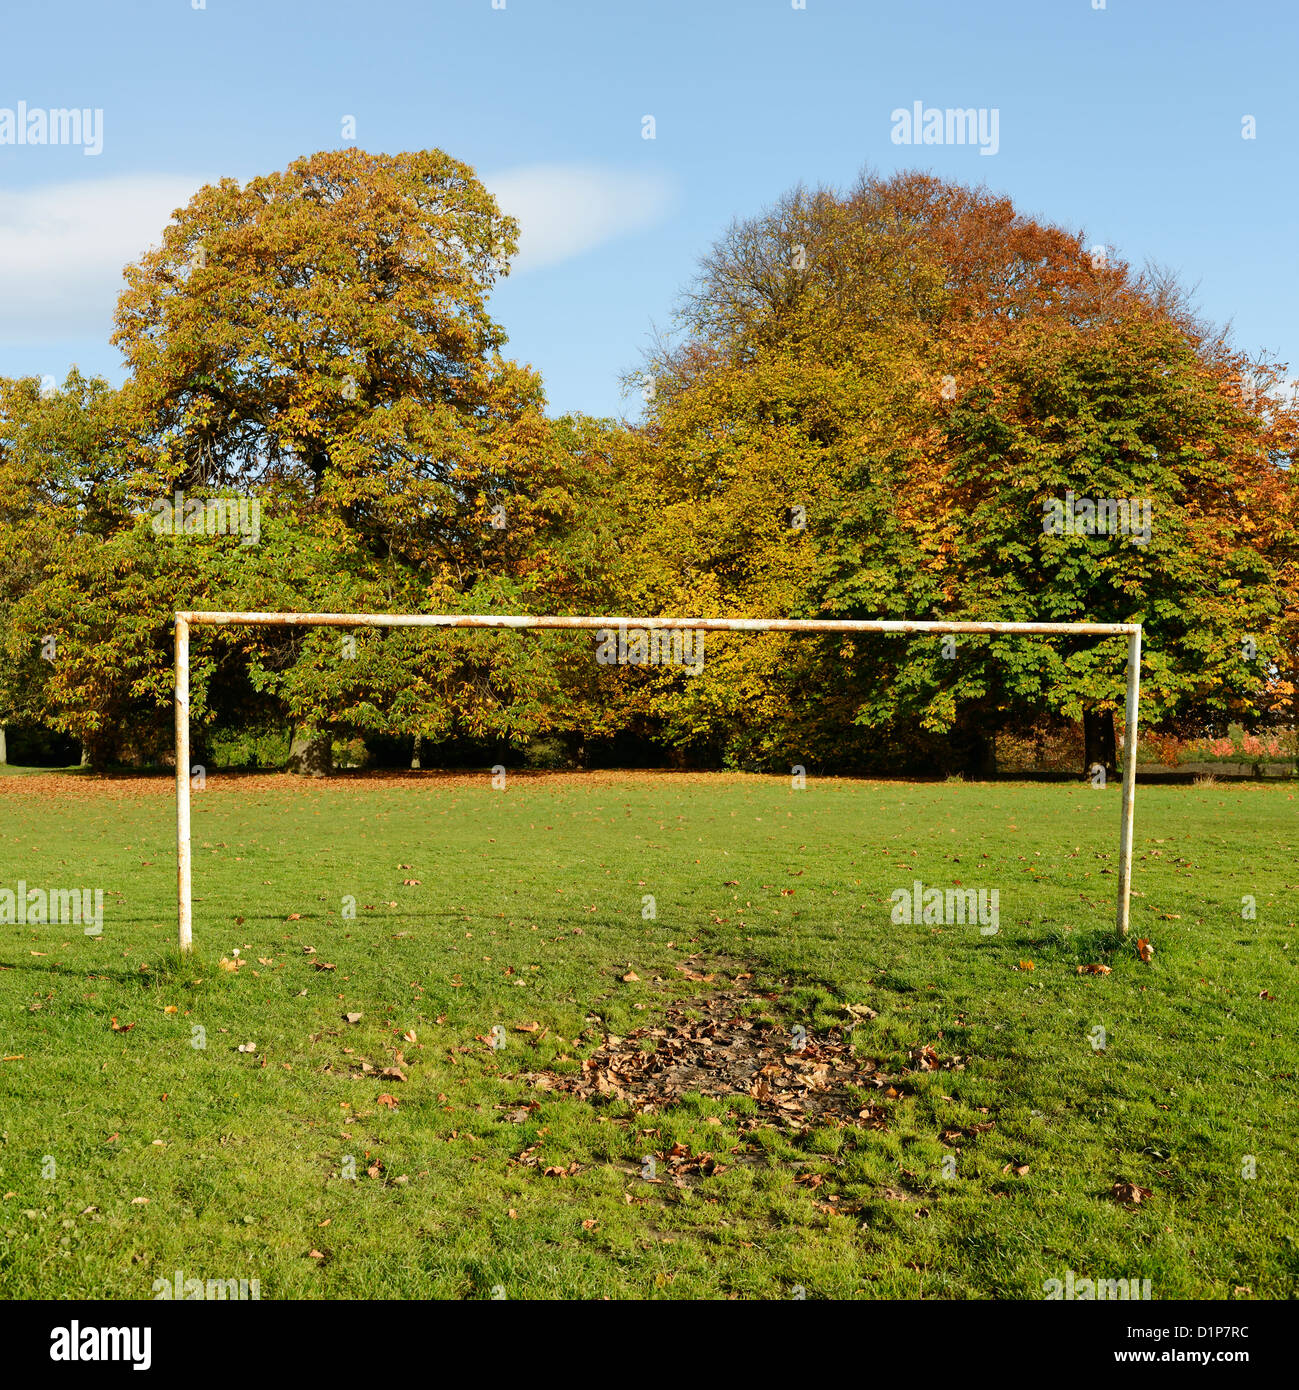 Old football goal posts in a park - Stock Image